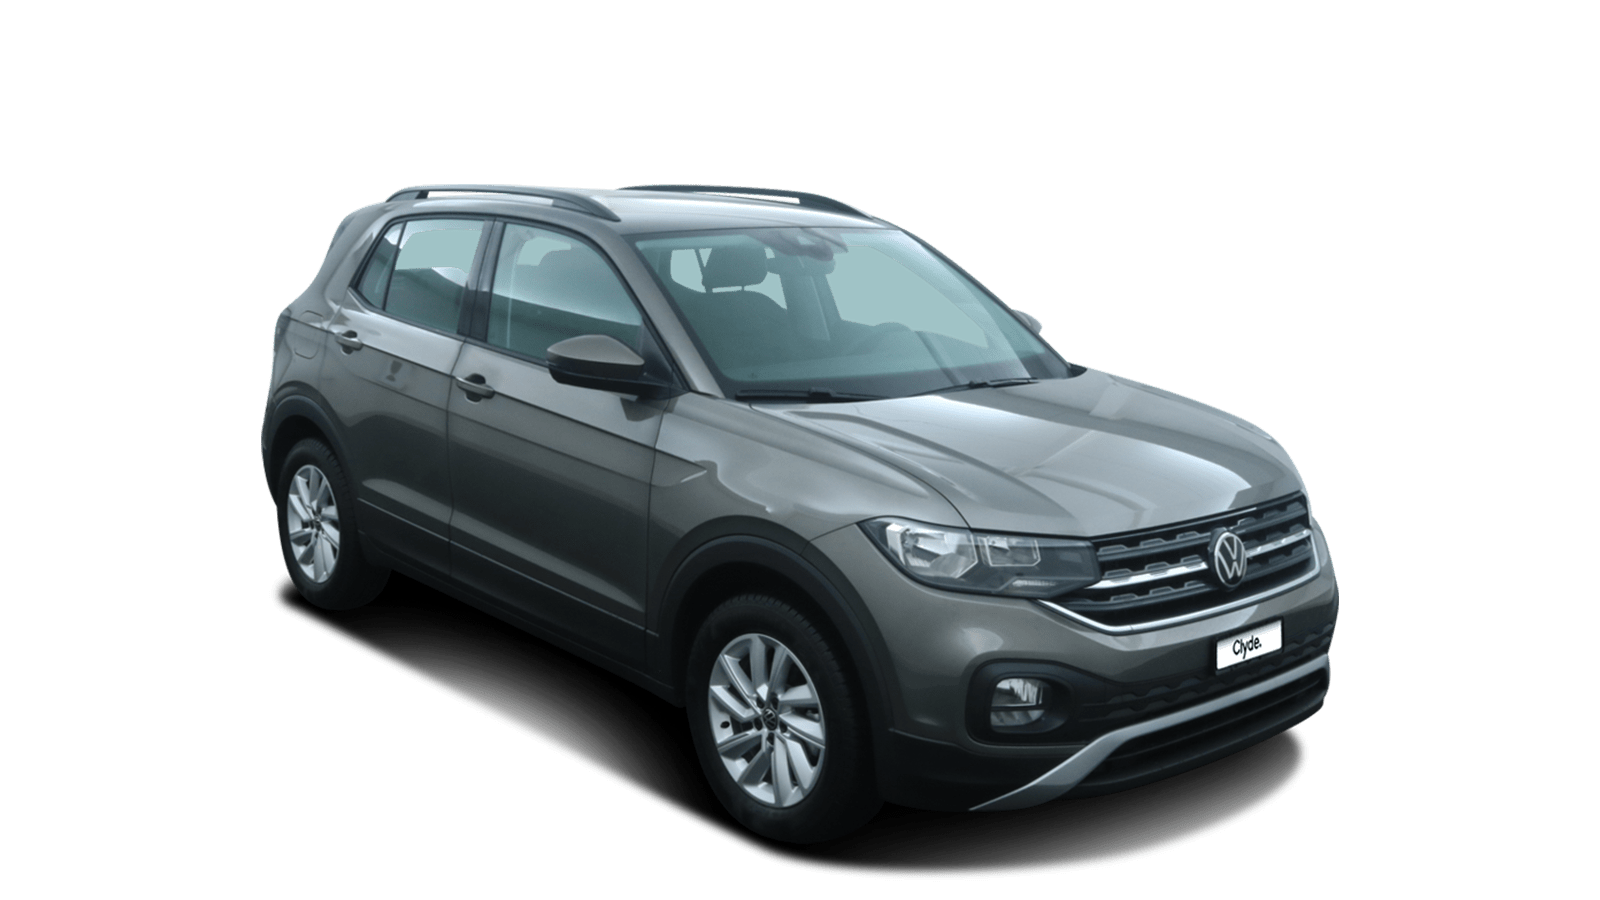 VW T-Cross Grau front - Clyde Auto-Abo